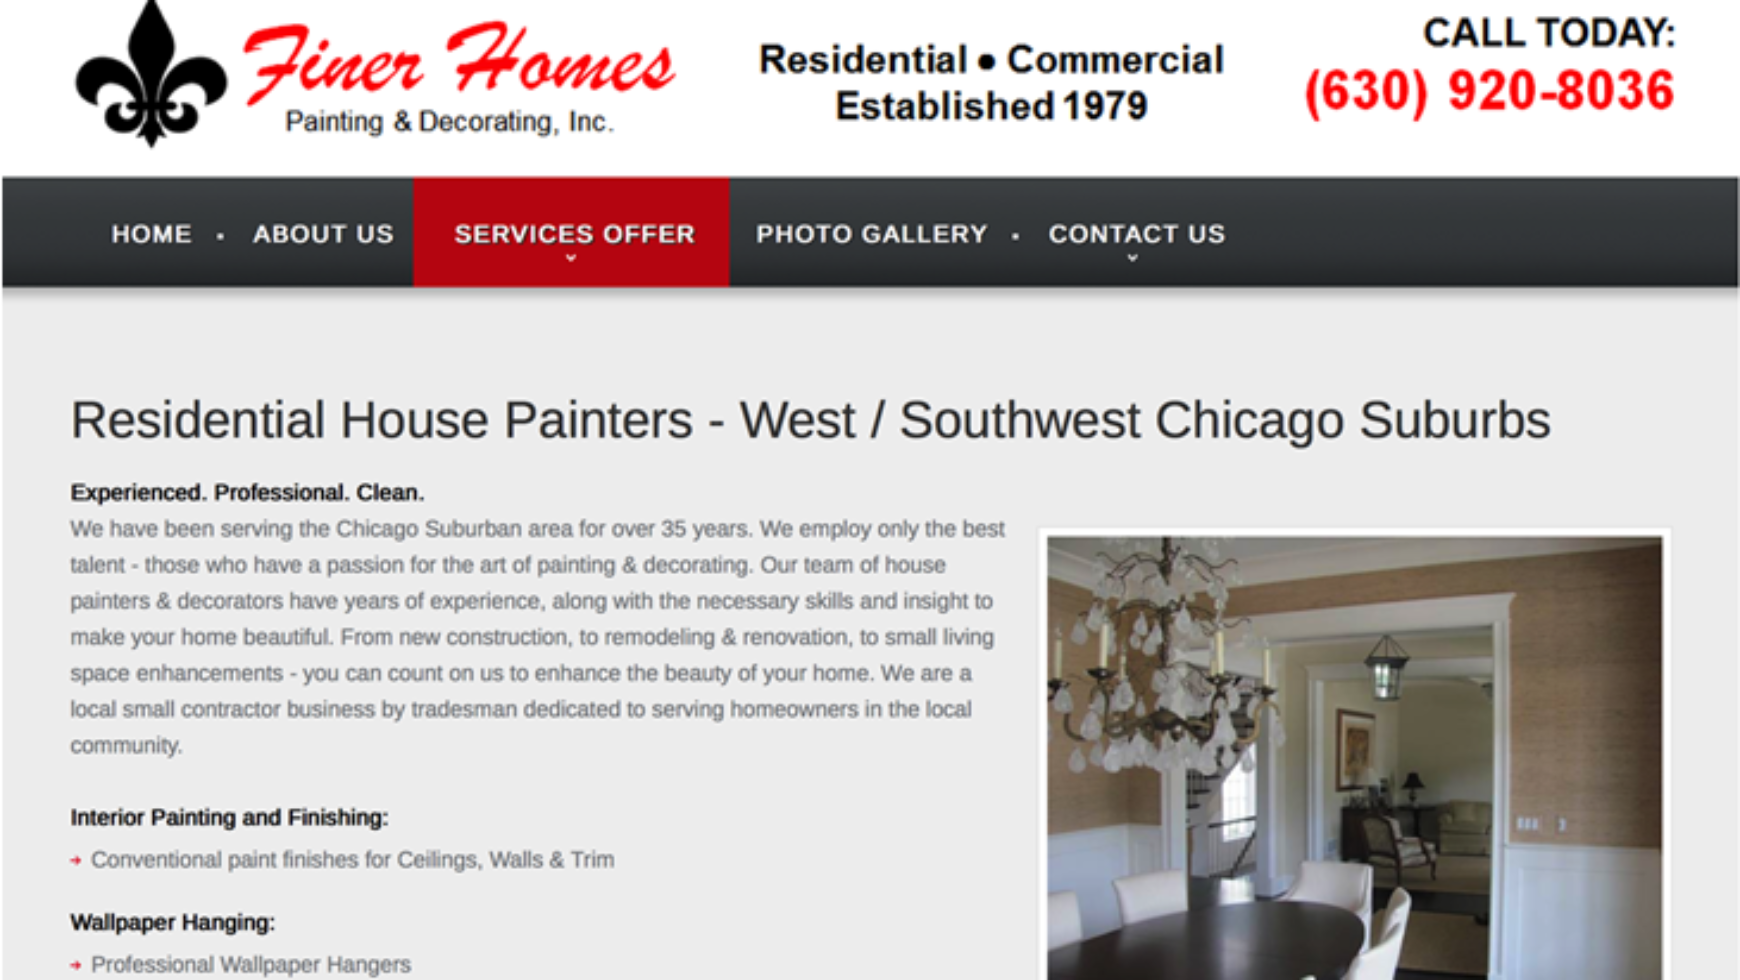 Finer Homes Painting & Decorating  Website – Chicago, IL